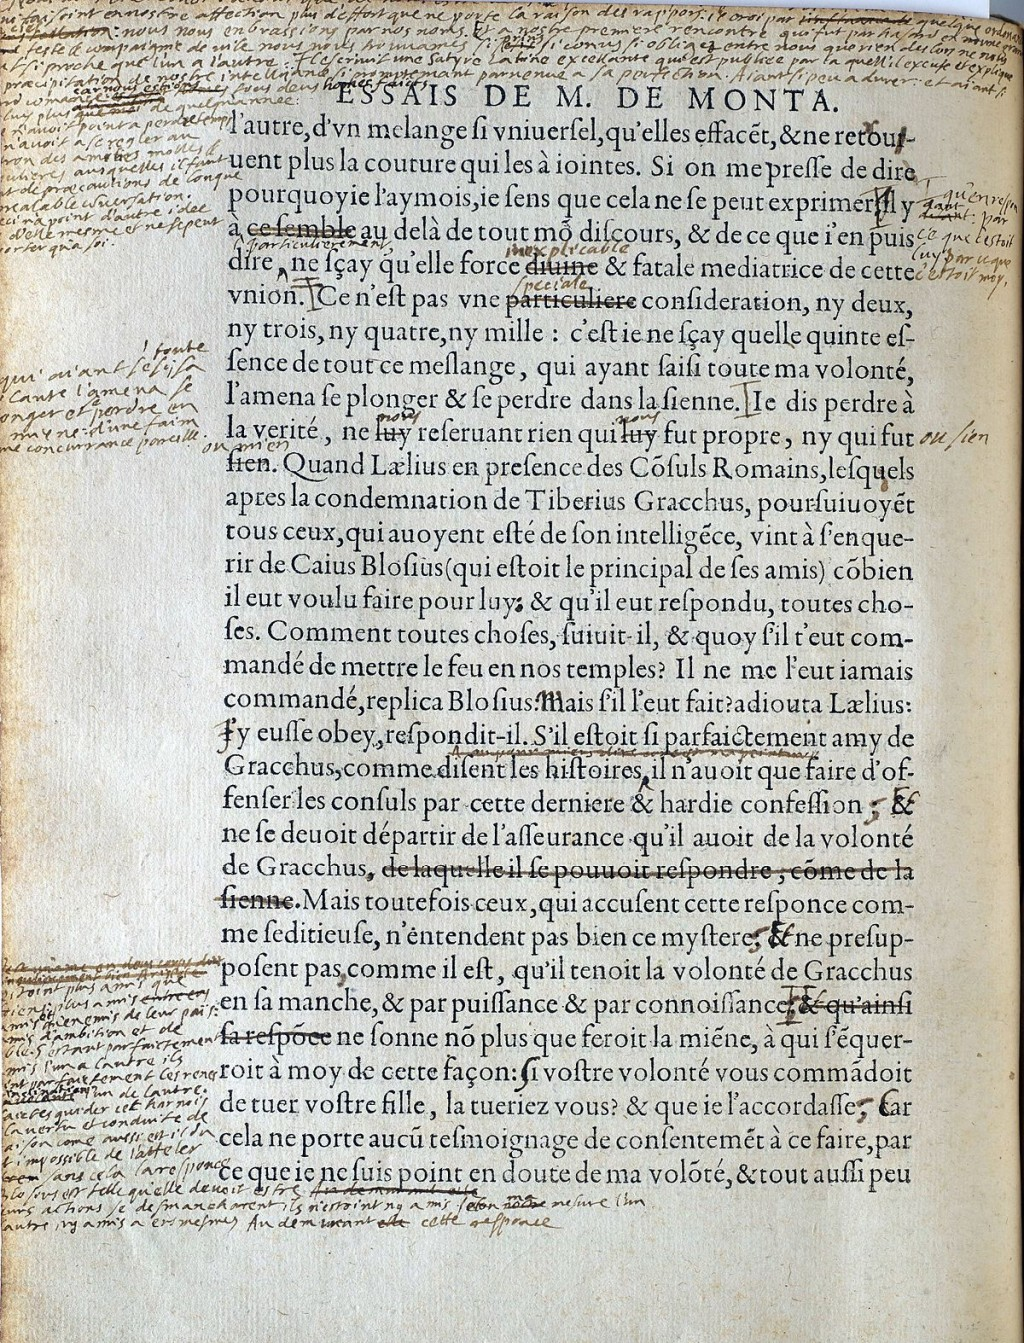 018 Montaigne Essays 1200px Essais Manuscript Essay Archaicawful Summary On Experience Quotes Best Translation Large